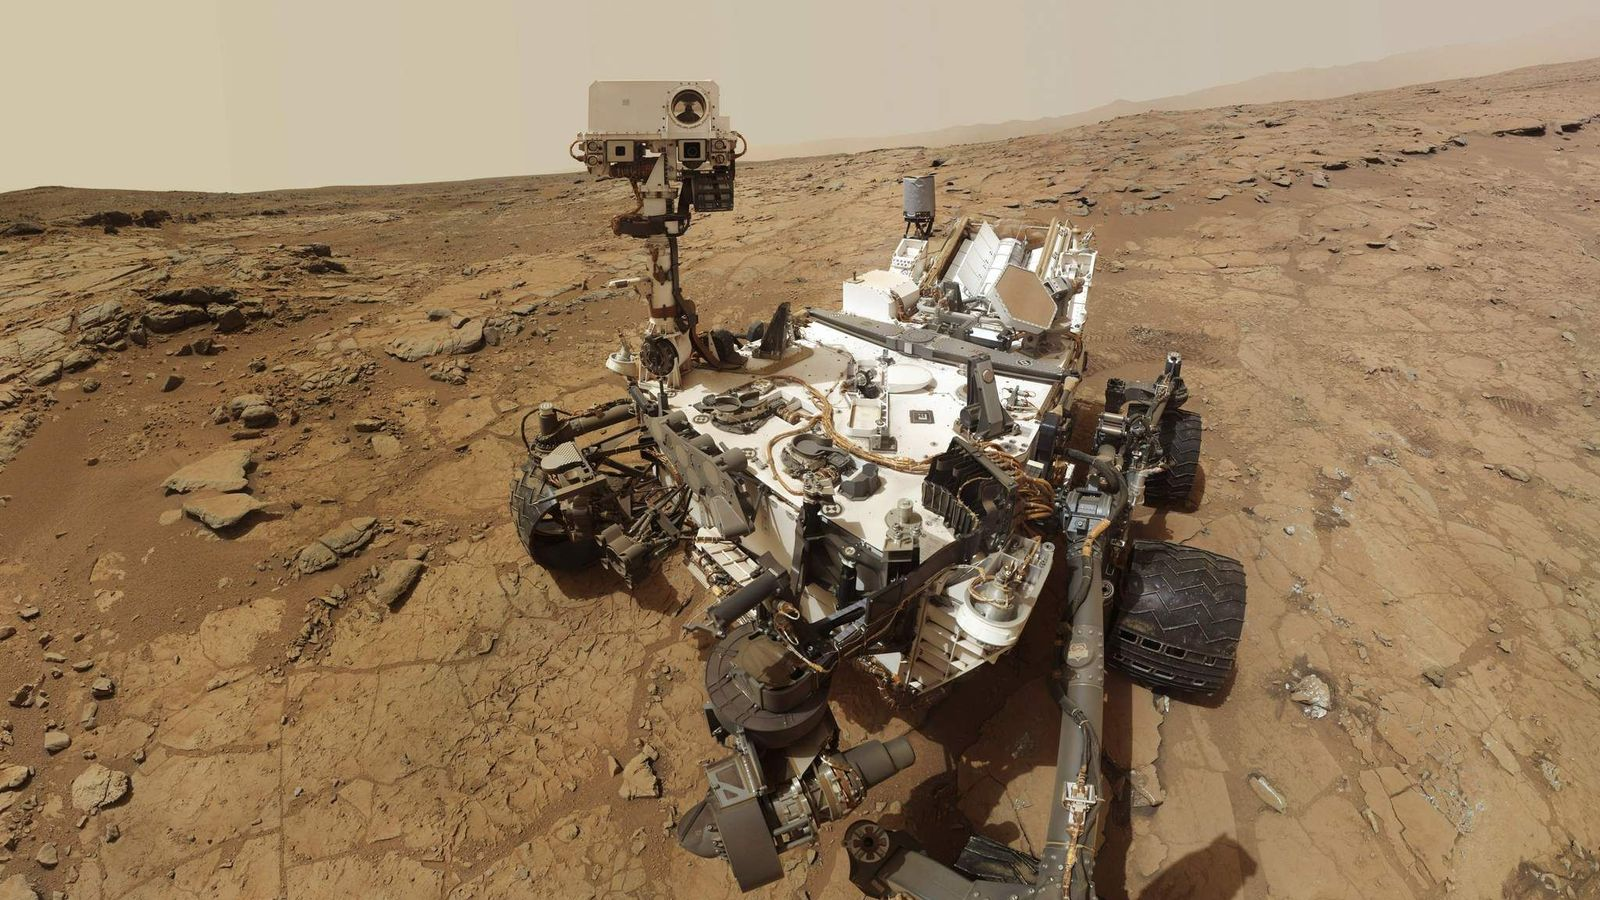 NASA's Mars rover Curiosity is pictured in this handout self-portrait